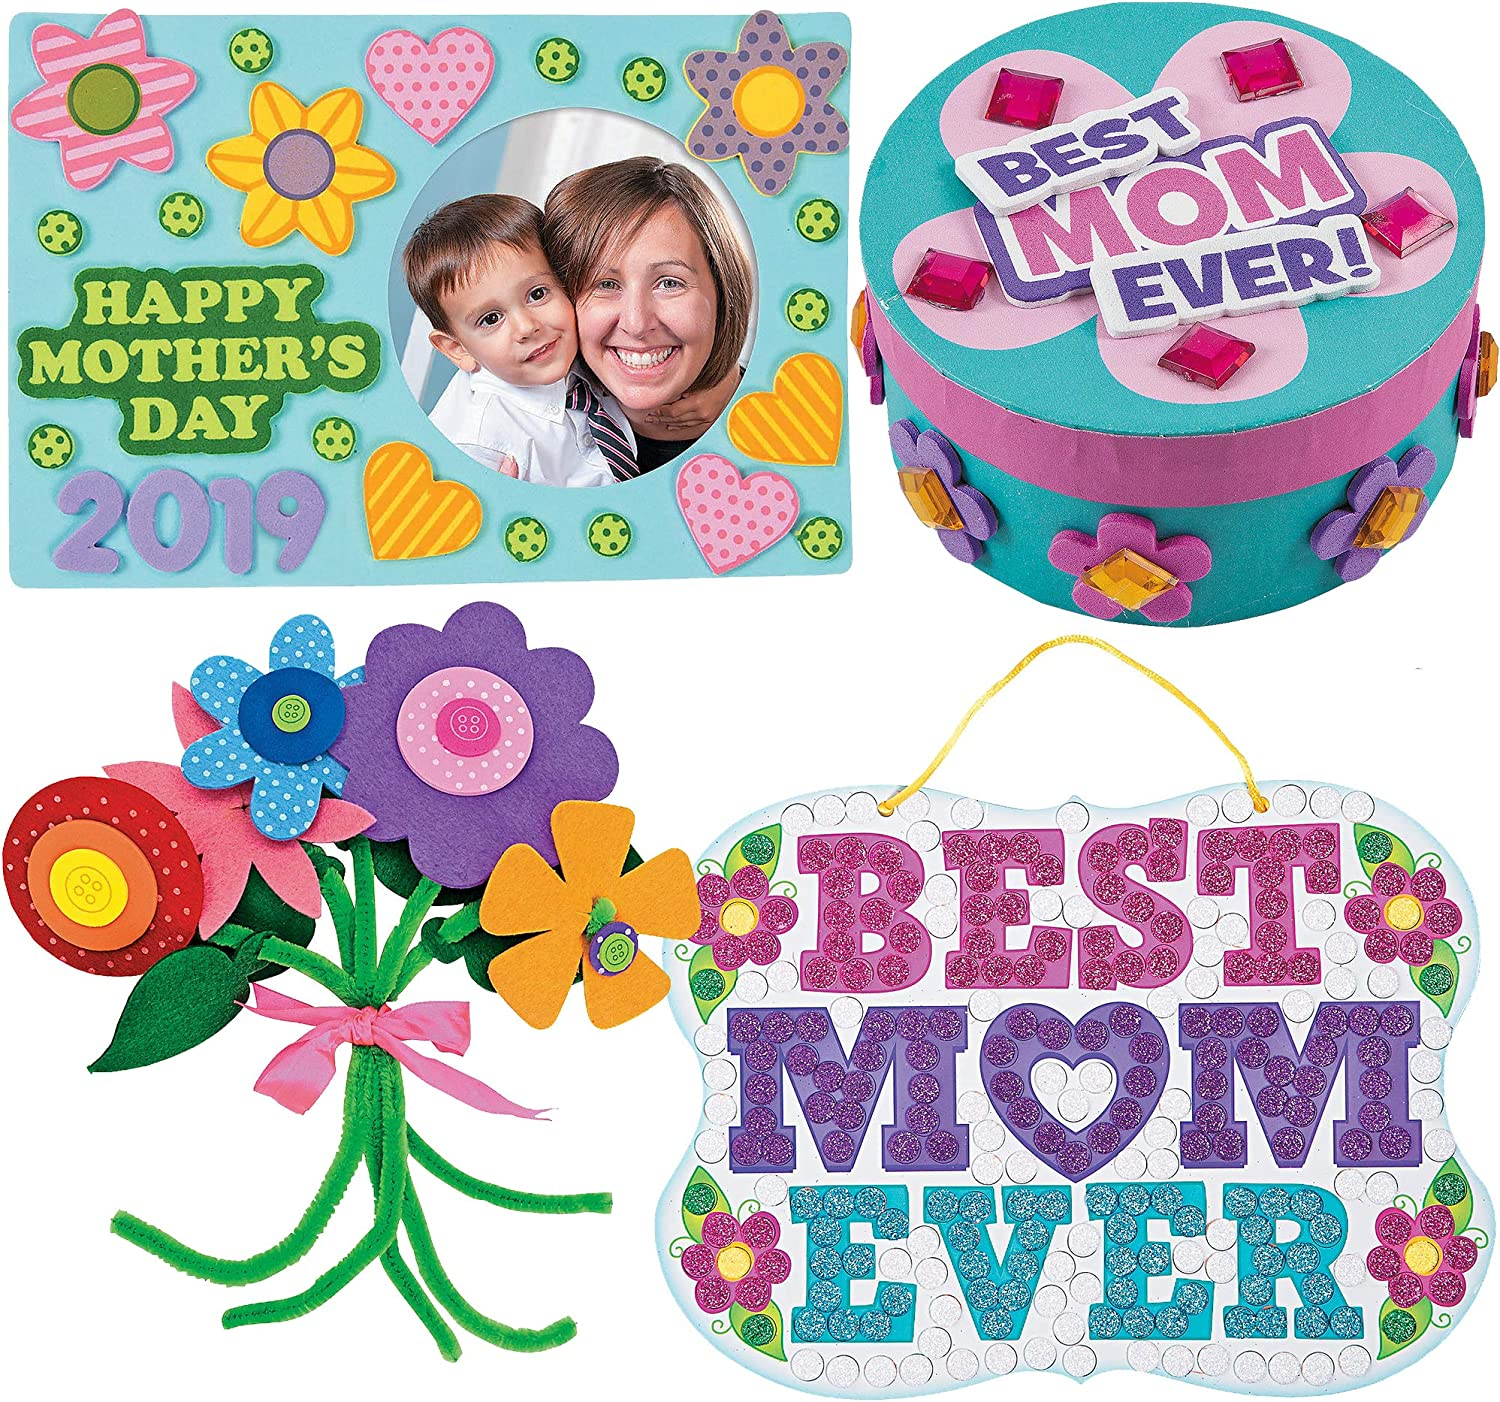 Mothers Day Craft Kit   Mum Picture Photo Frame, Self-Adhesive Flower Bouquet, Bike Magnet, Mom Glitter Mosaic Sign & Jewelry Box Craft   Kids DIY Classroom Daycare Homeschool Art Gift Toys Boys Girls